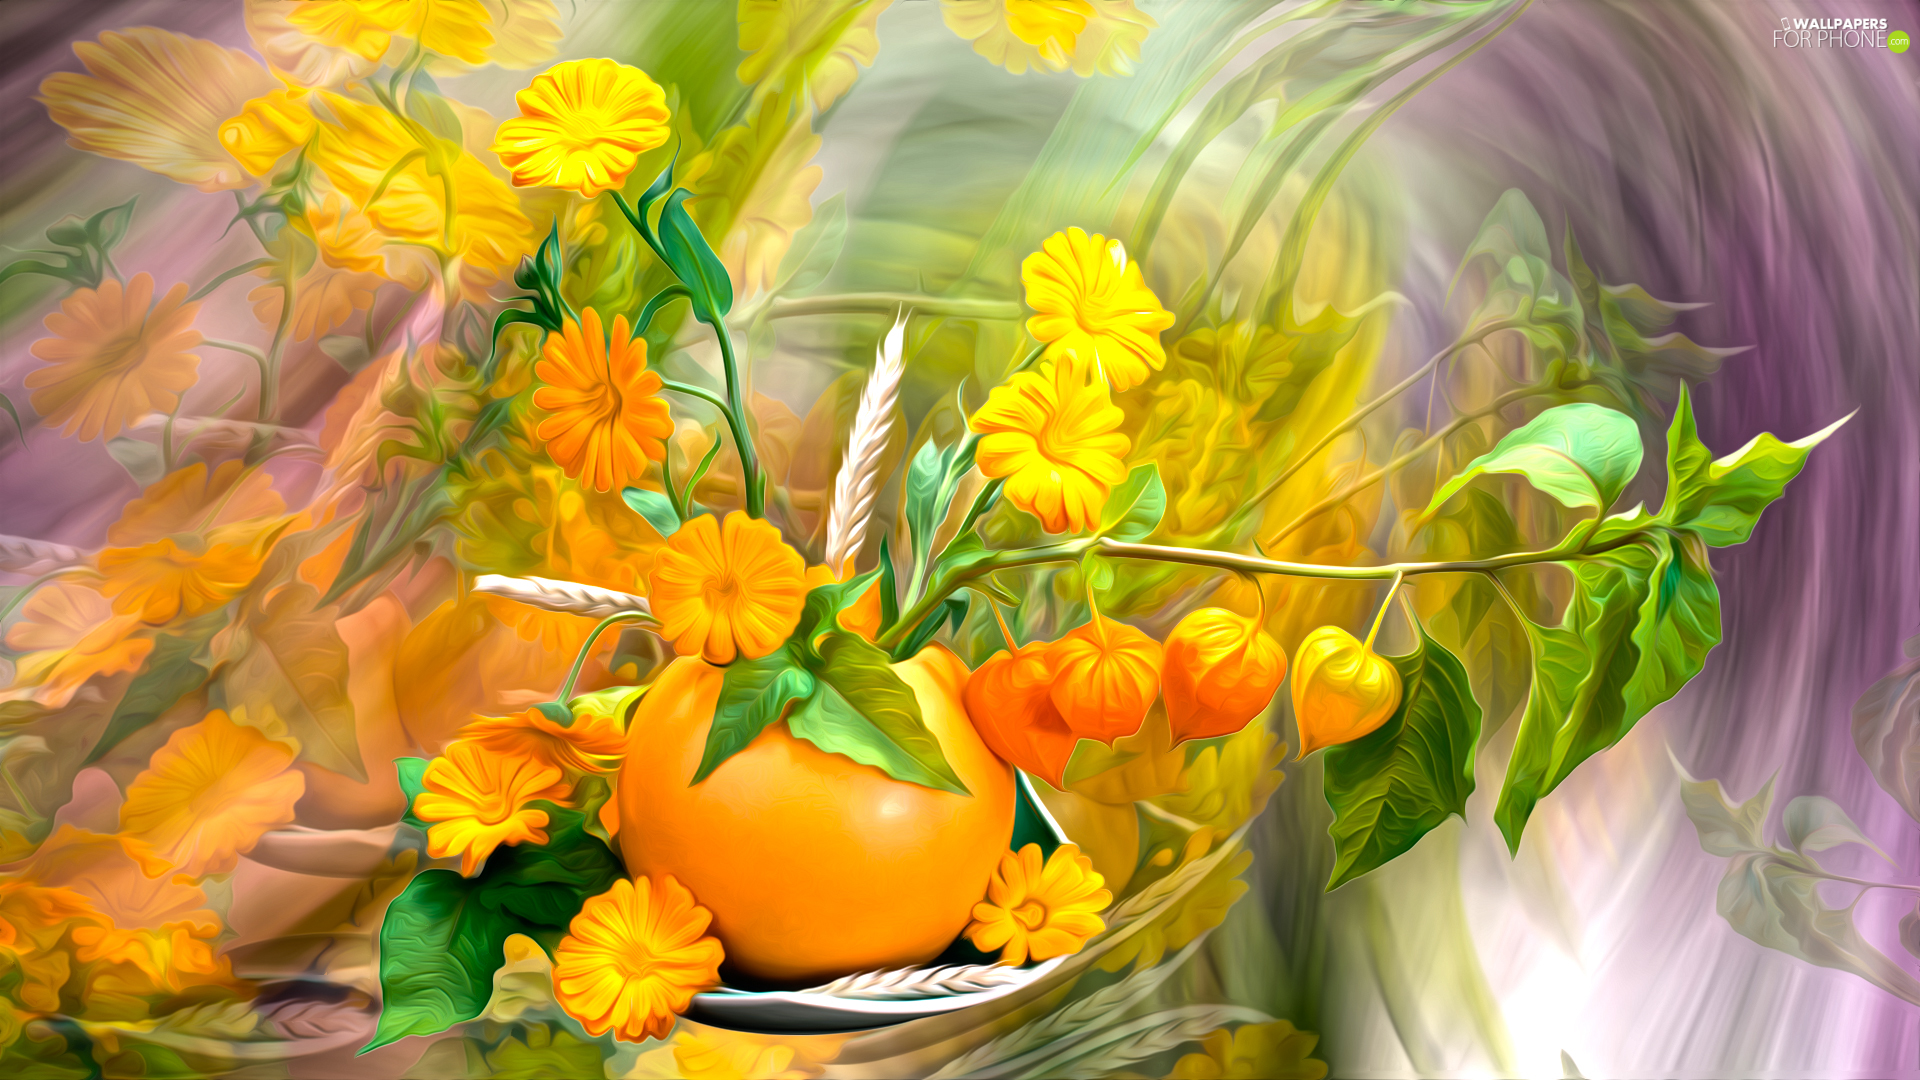 bouquet, Flowers, vase, physalis, Yellow, Leaf, graphics